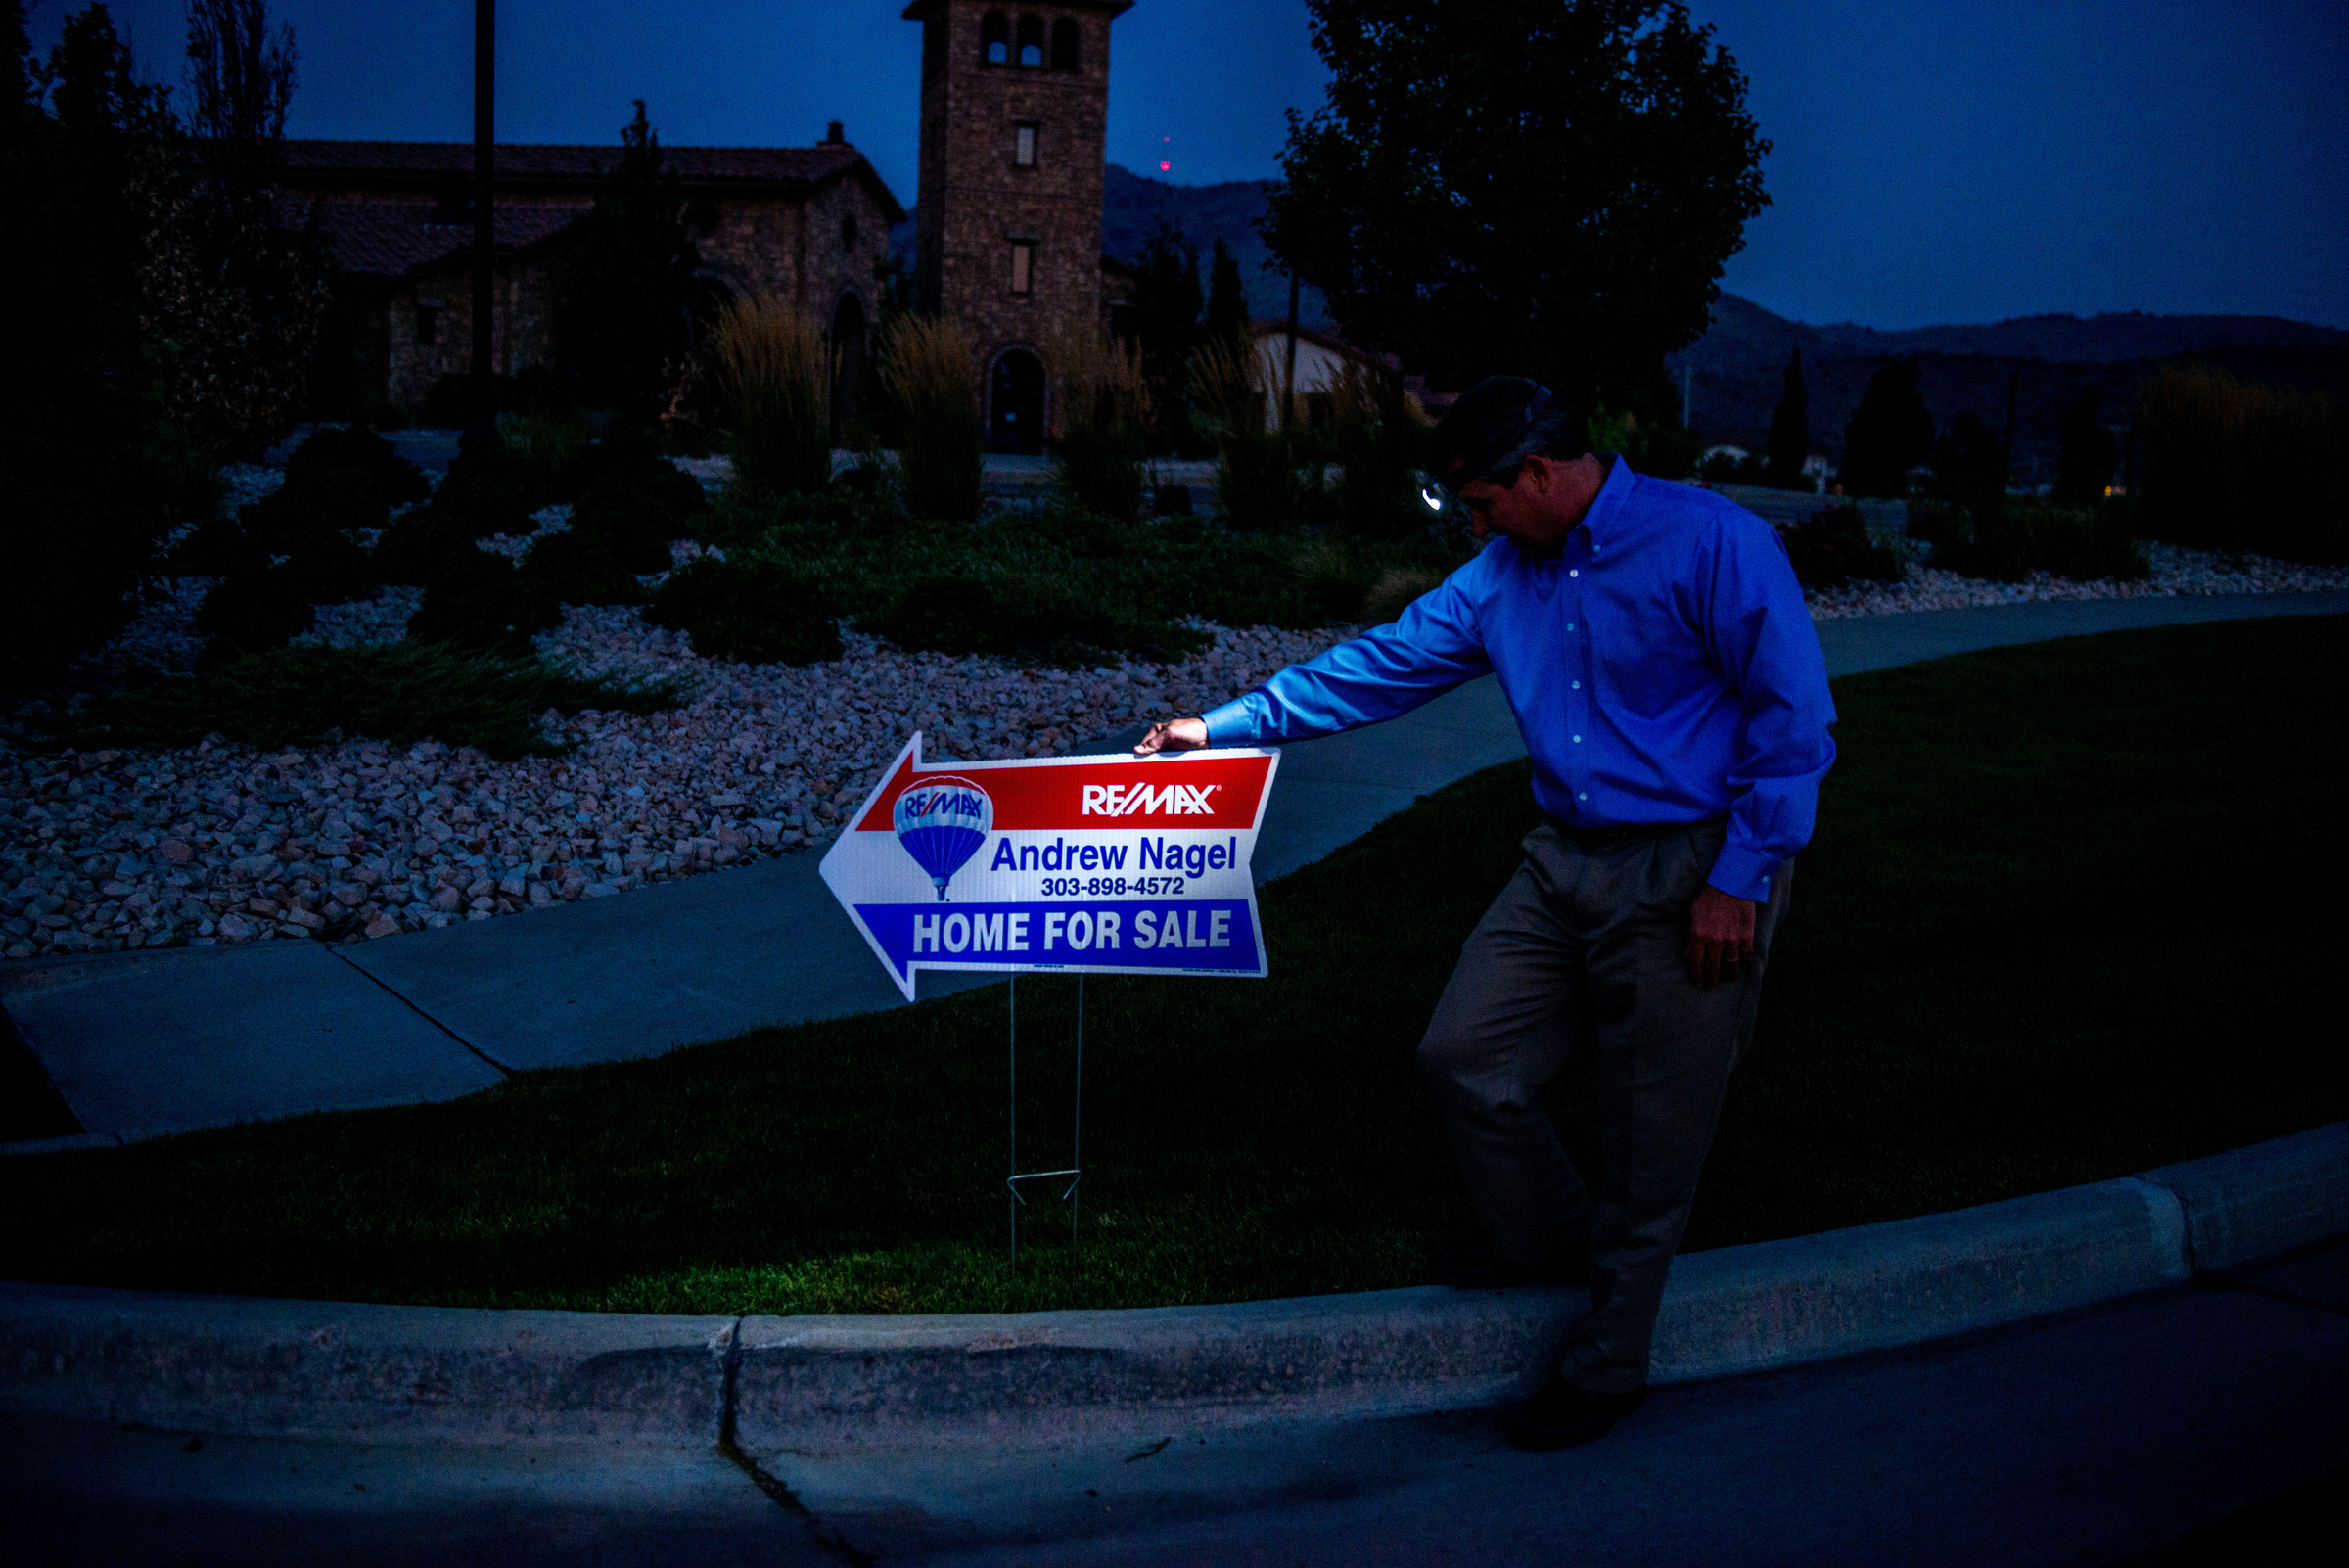 Andrew Nagel Realtor putting out signs in the dark.